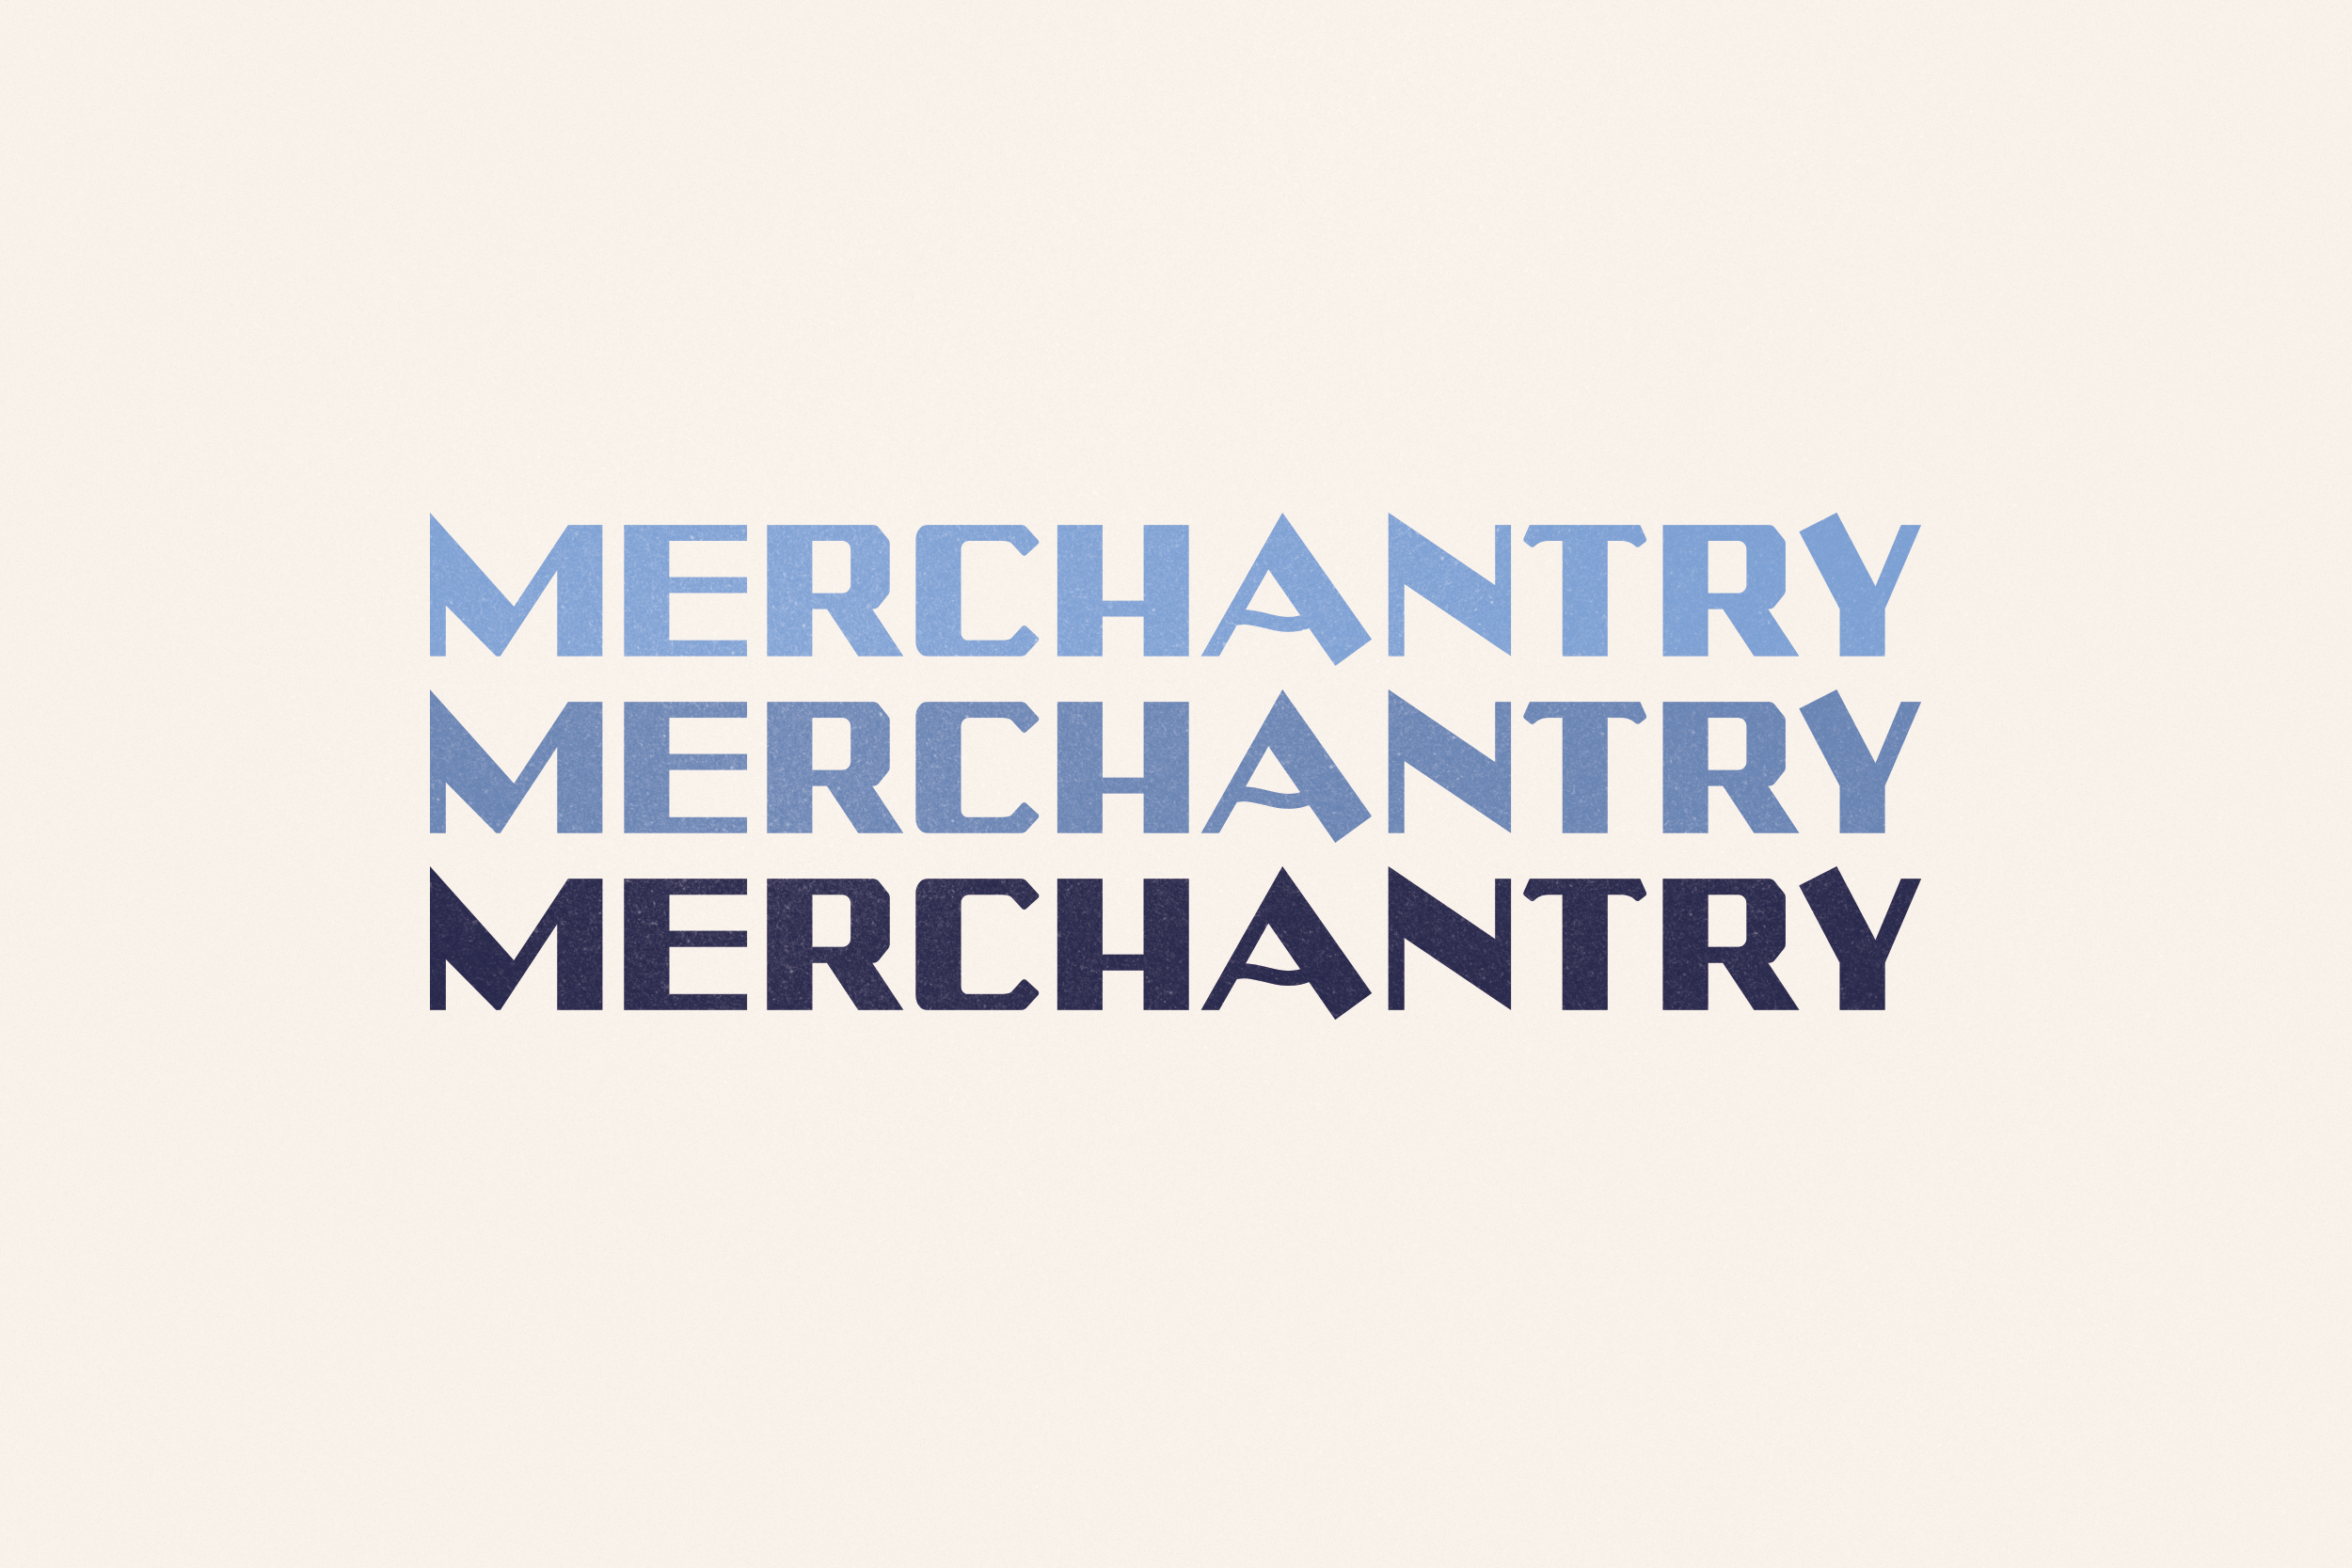 merchantry-1.png